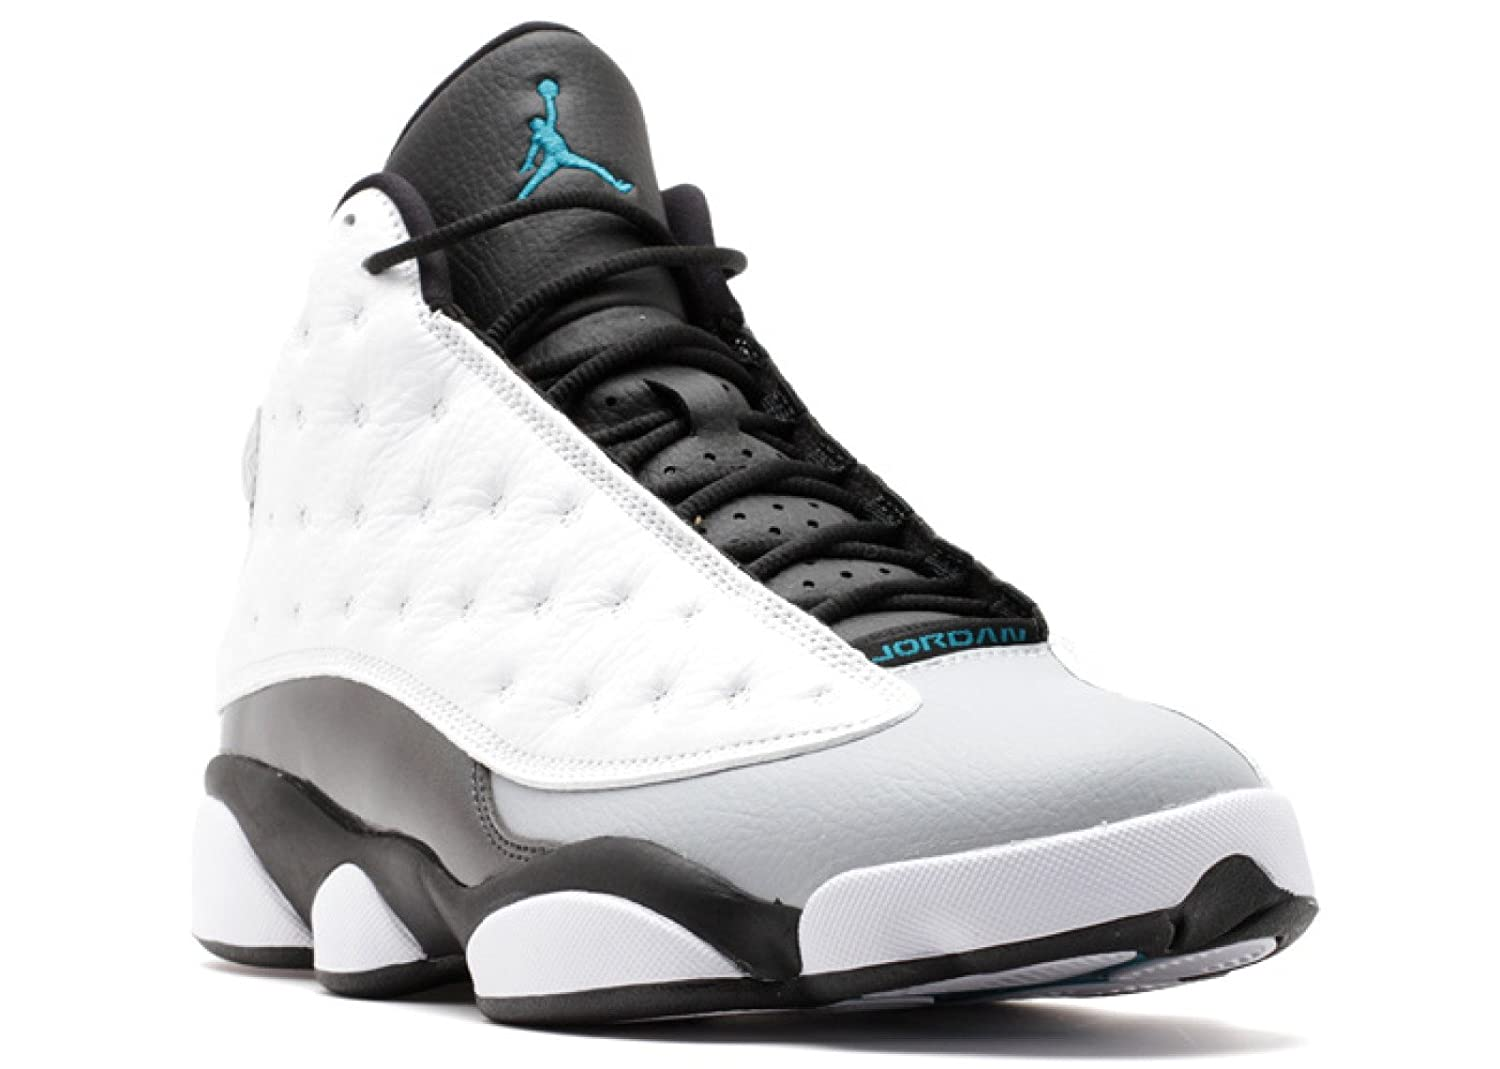 innovative design a3e4d 6e75f Amazon.com | AIR Jordan 13 Retro 'Barons' - 414571-115 ...